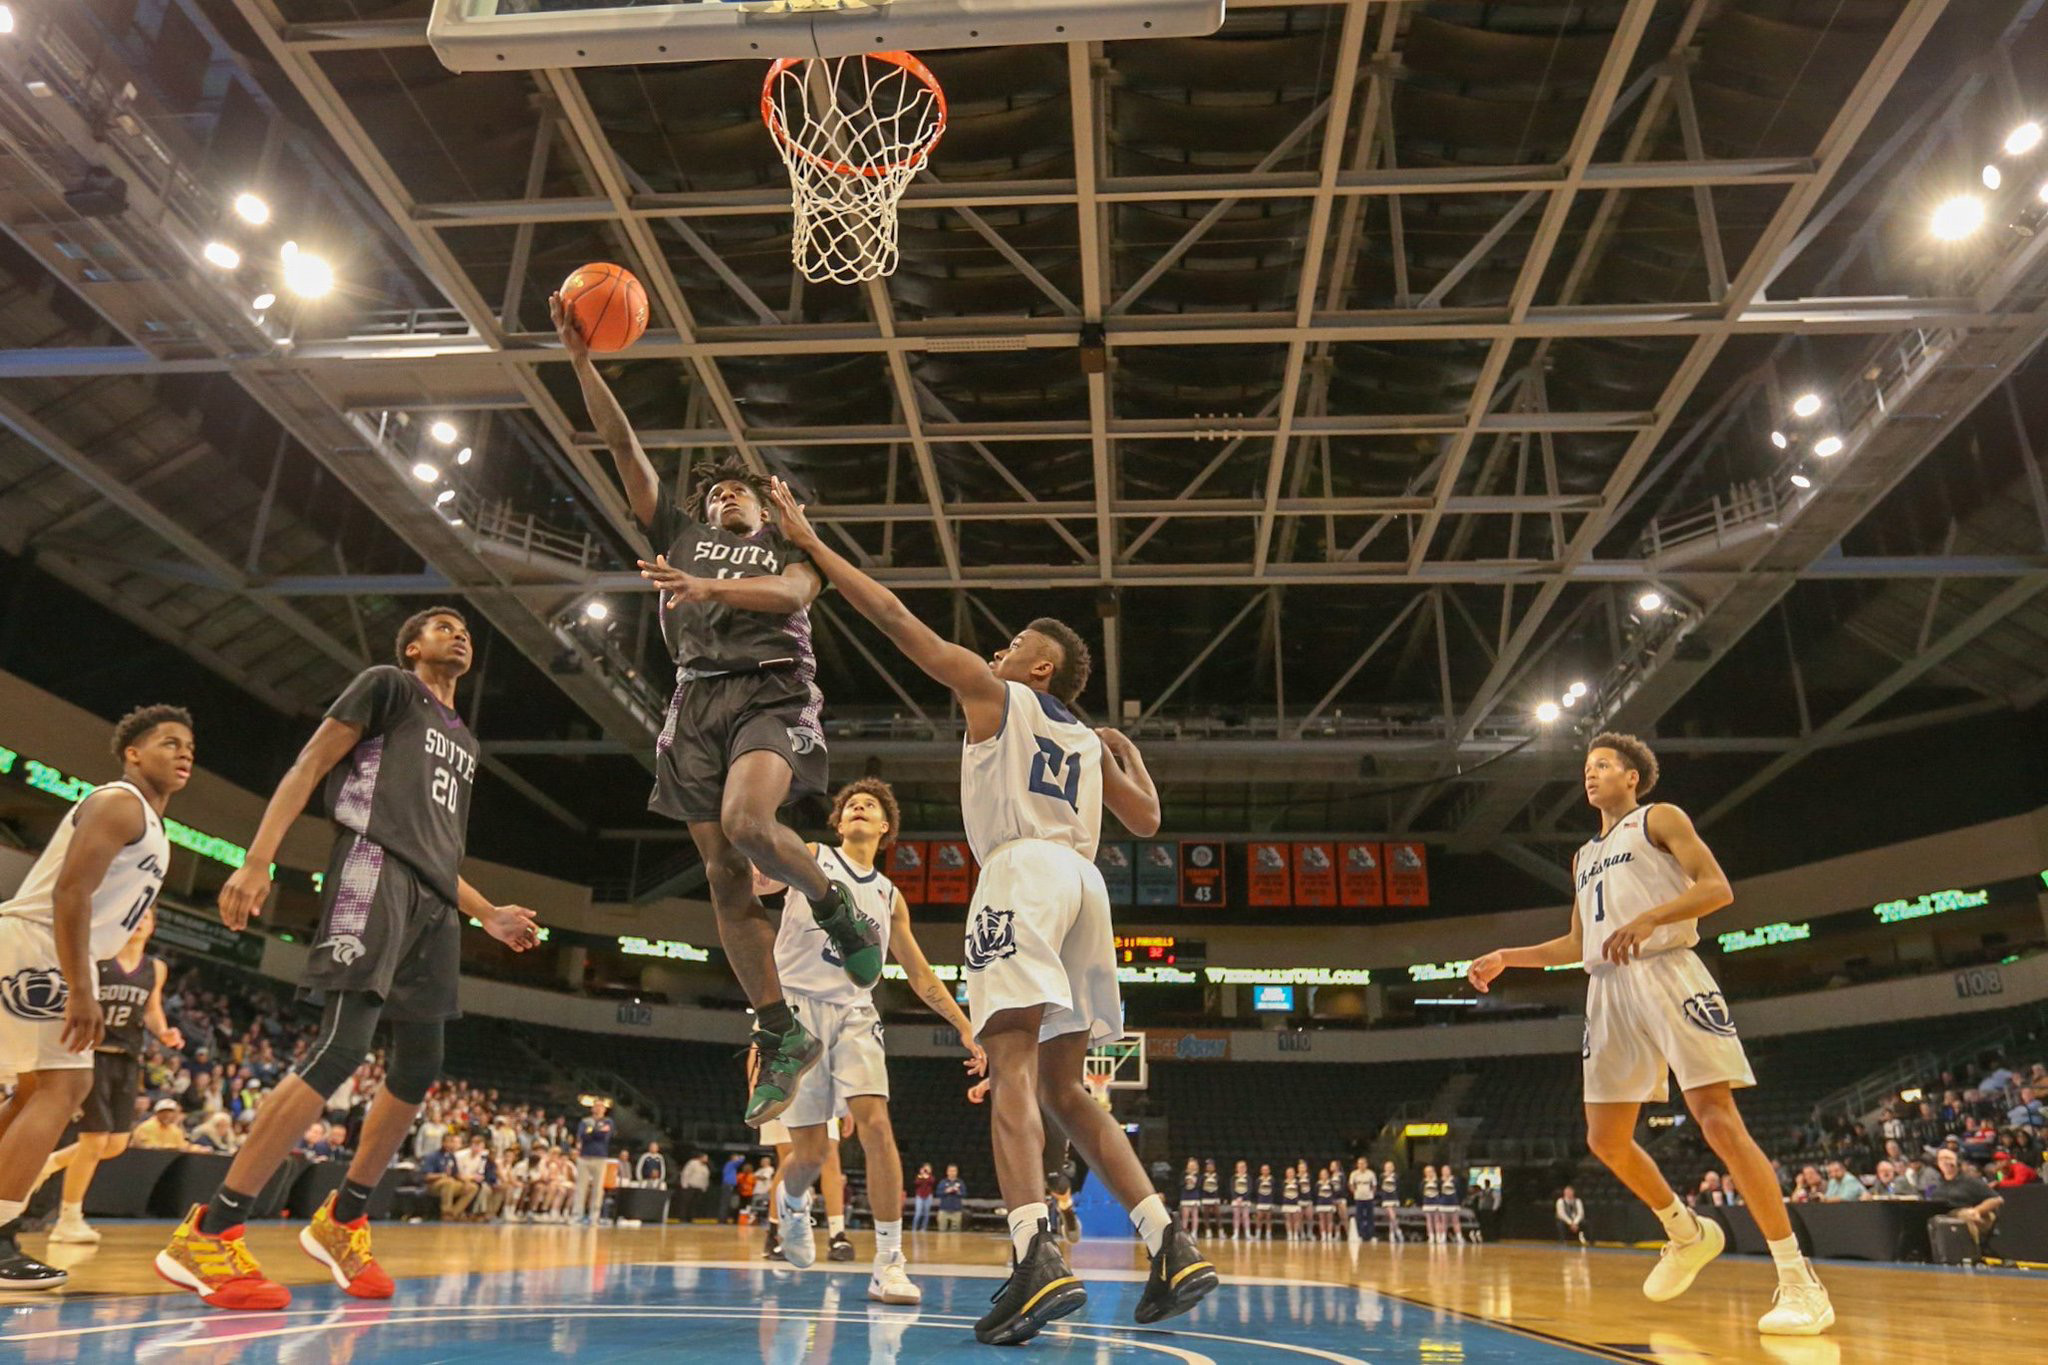 Ed Maygar/Special to the Citizen Park Hill South's Lamel Robinson, center, goes up for a layup during a Class 5 sectional game on Wednesday, March 6 at the Silverstein Eye Centers Arena.